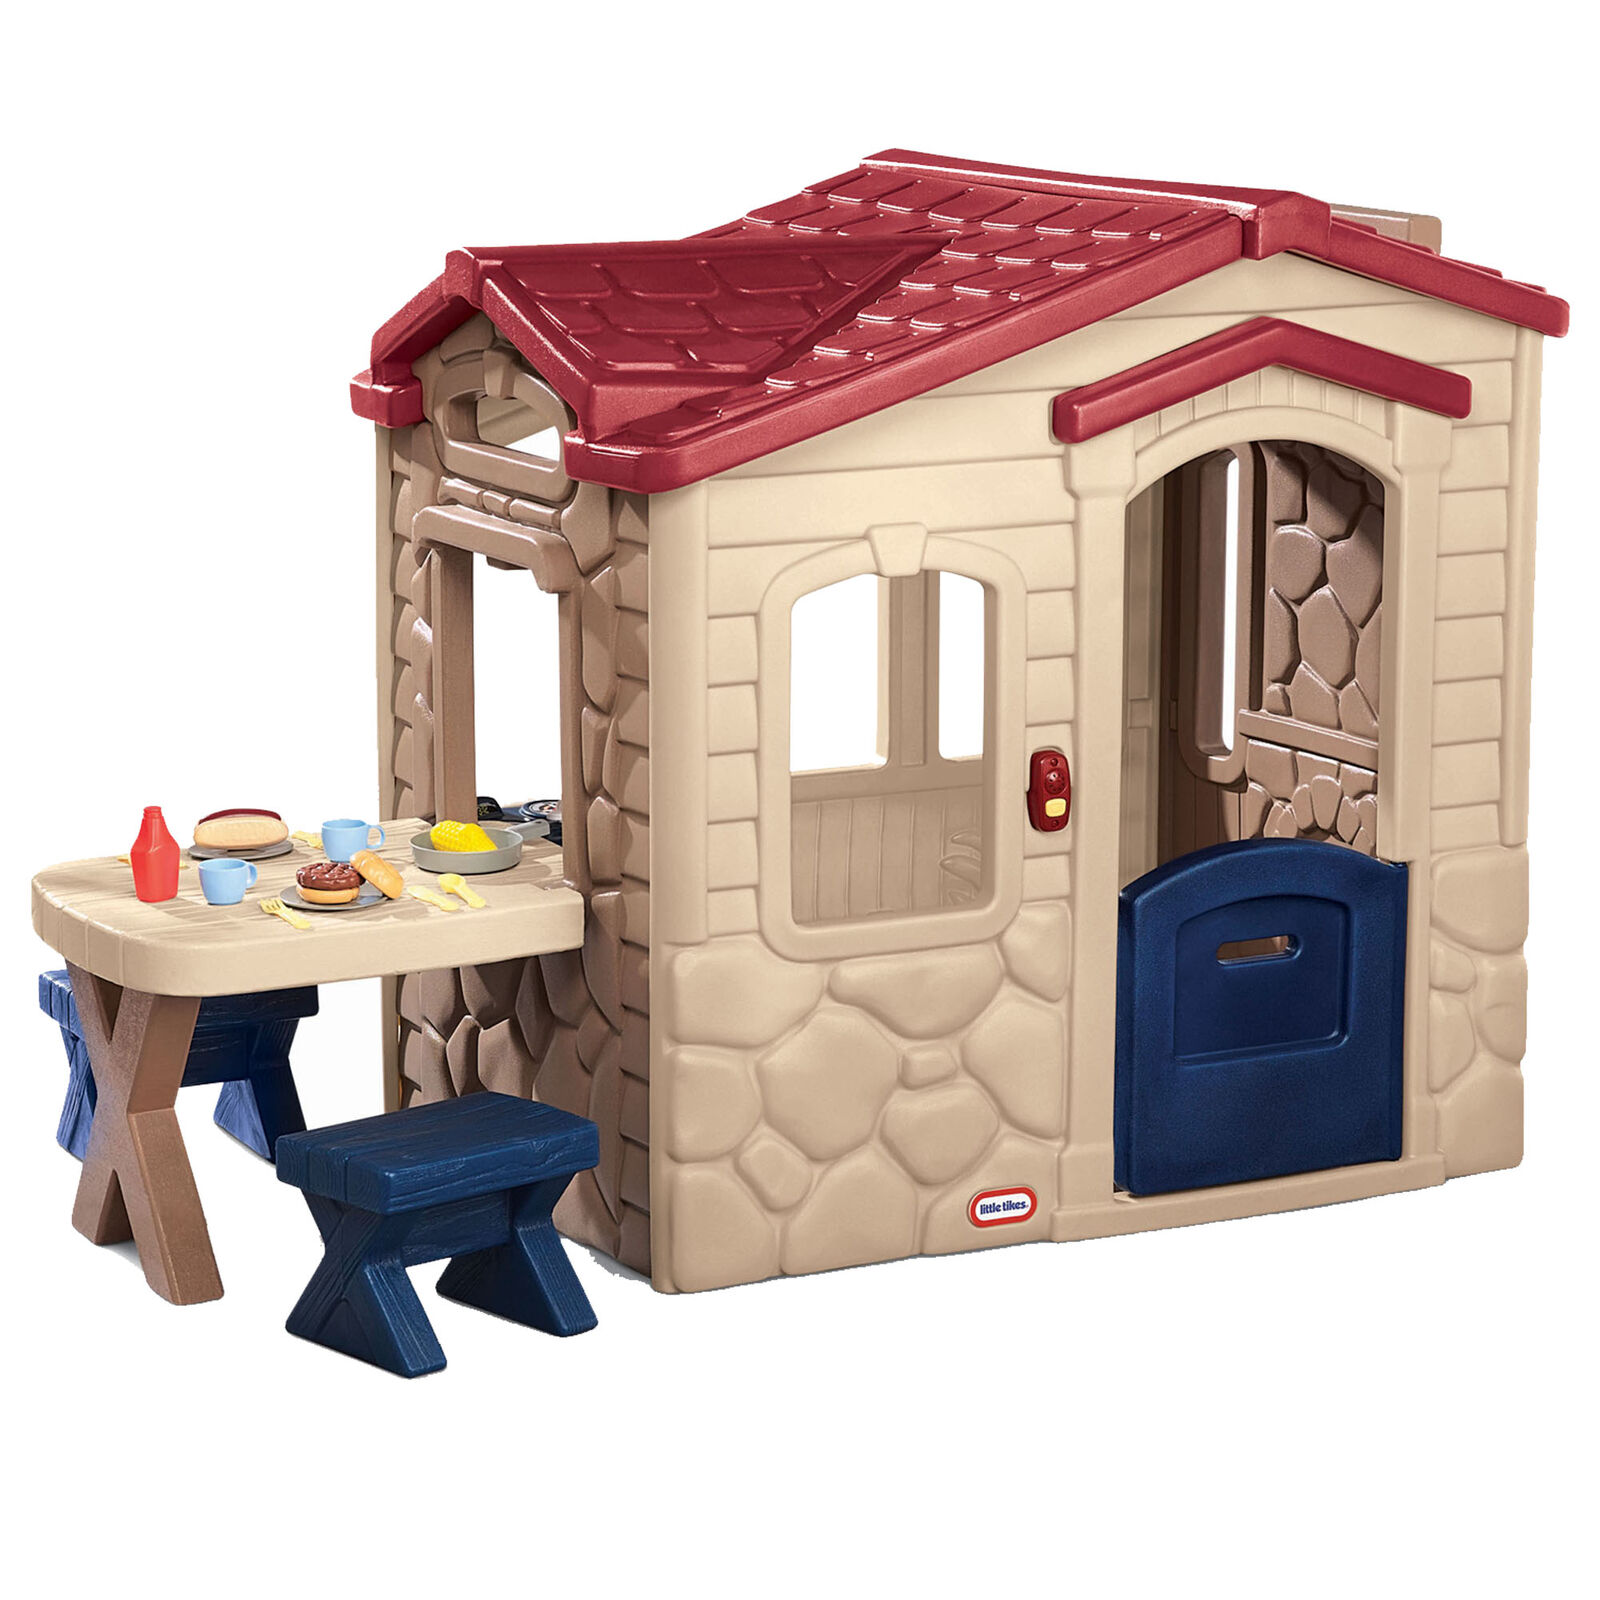 Garden Girls Playhouse Playhouse Playhouse Sweetheart Patio Picnic Special Gift Outdoor Pretend Game 44ffb5